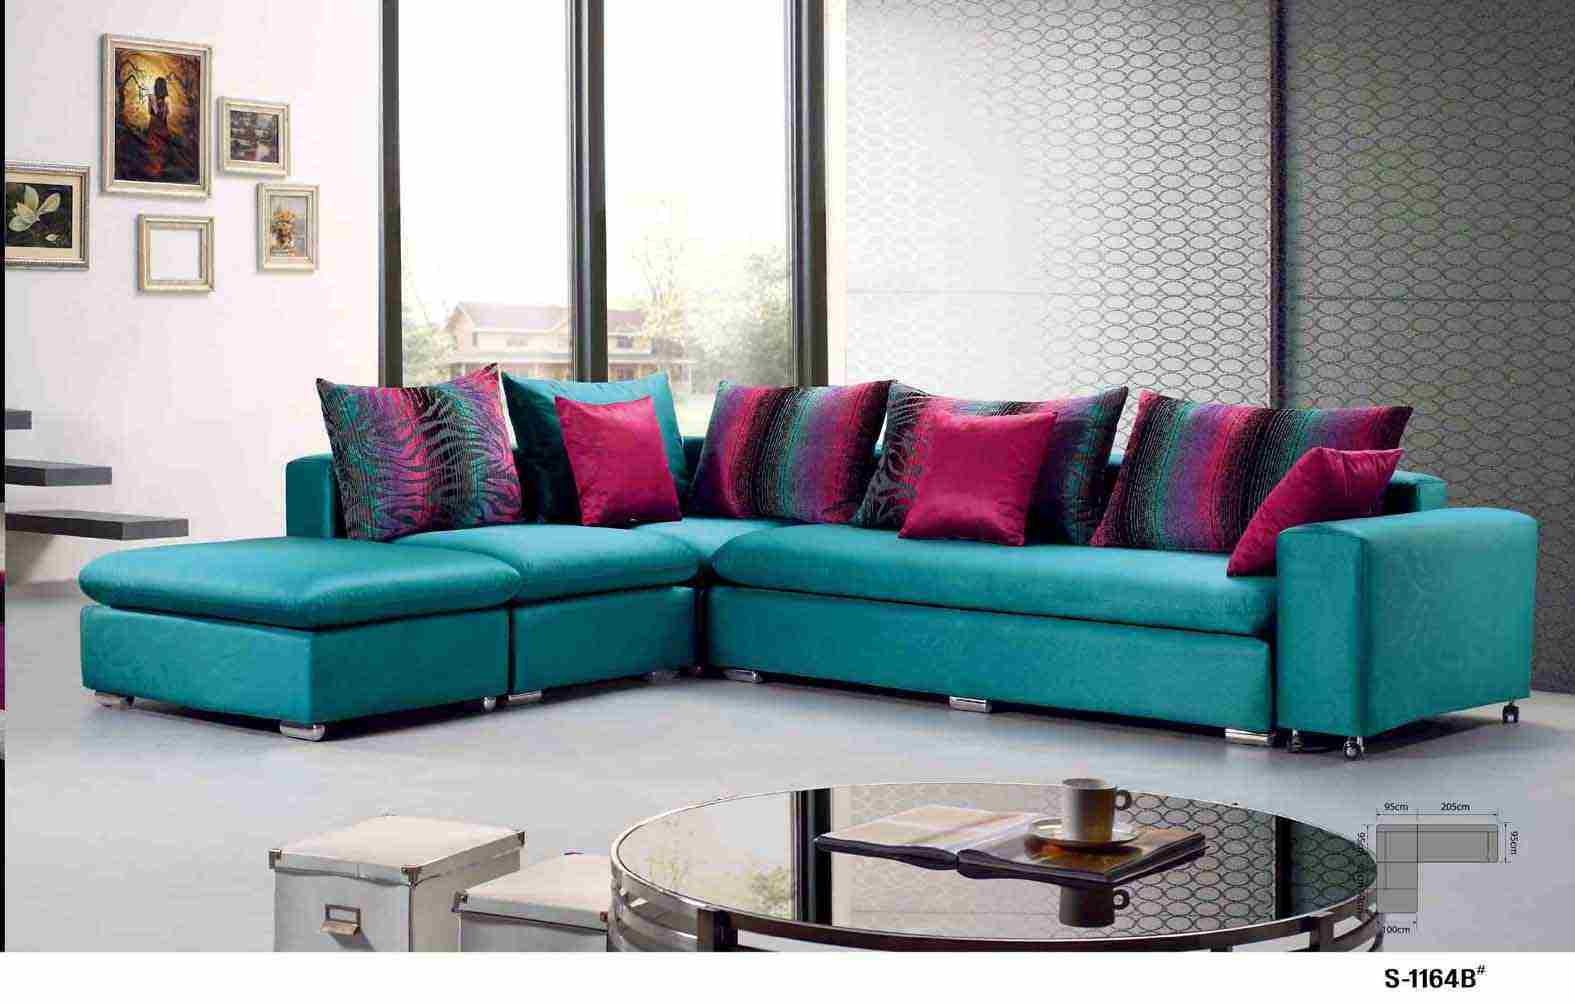 China Colorful Fabric Sofa S 1164b China Sofa Fabric Sofa